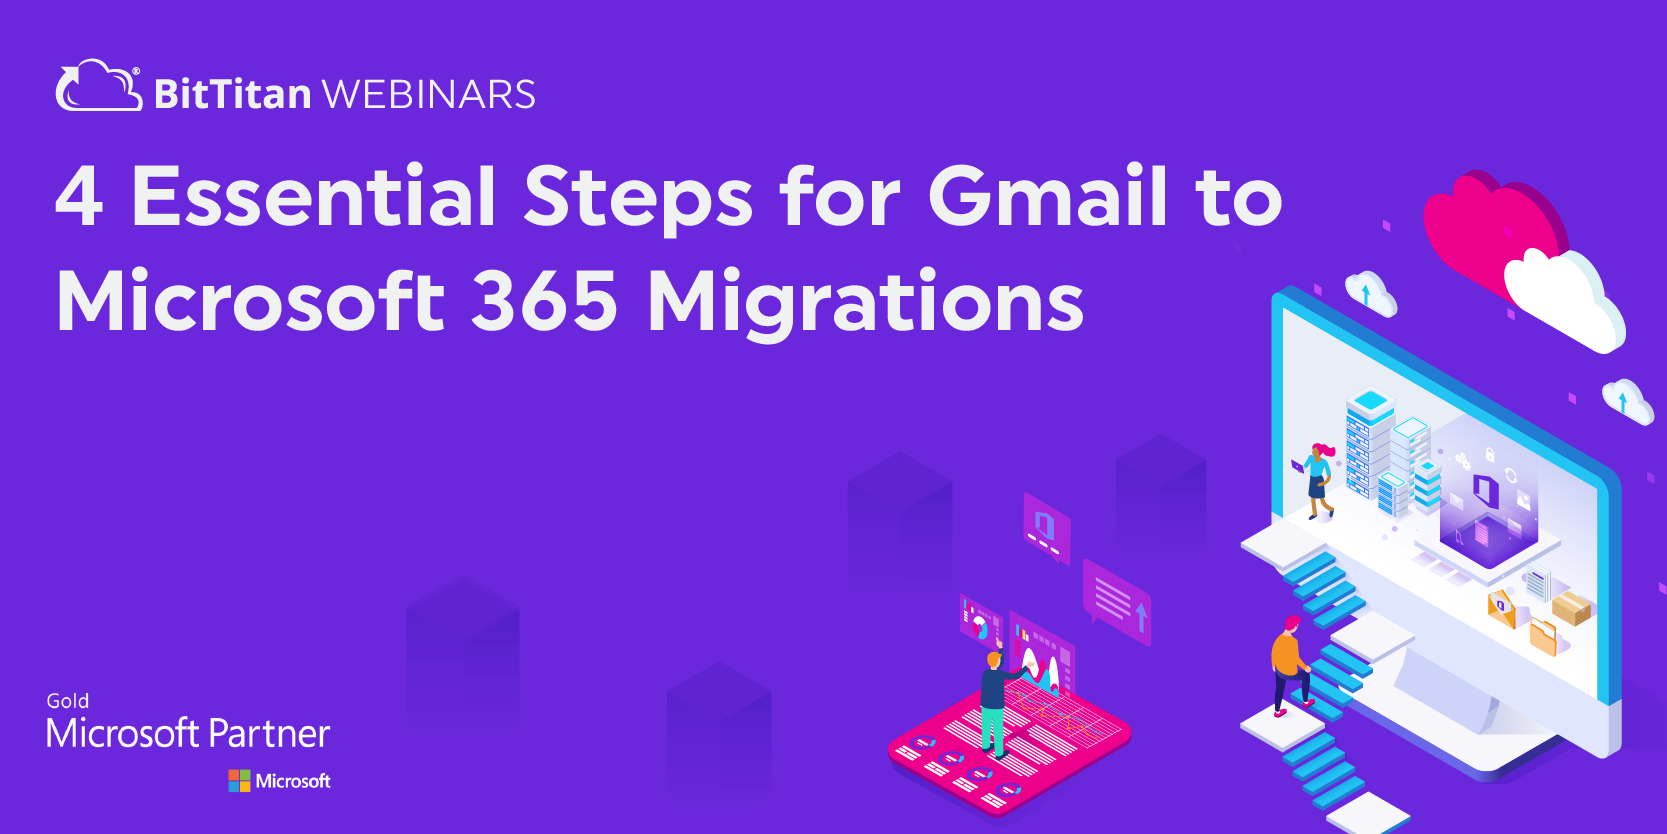 4 Essential Steps for a Gmail to Microsoft 365 Migration